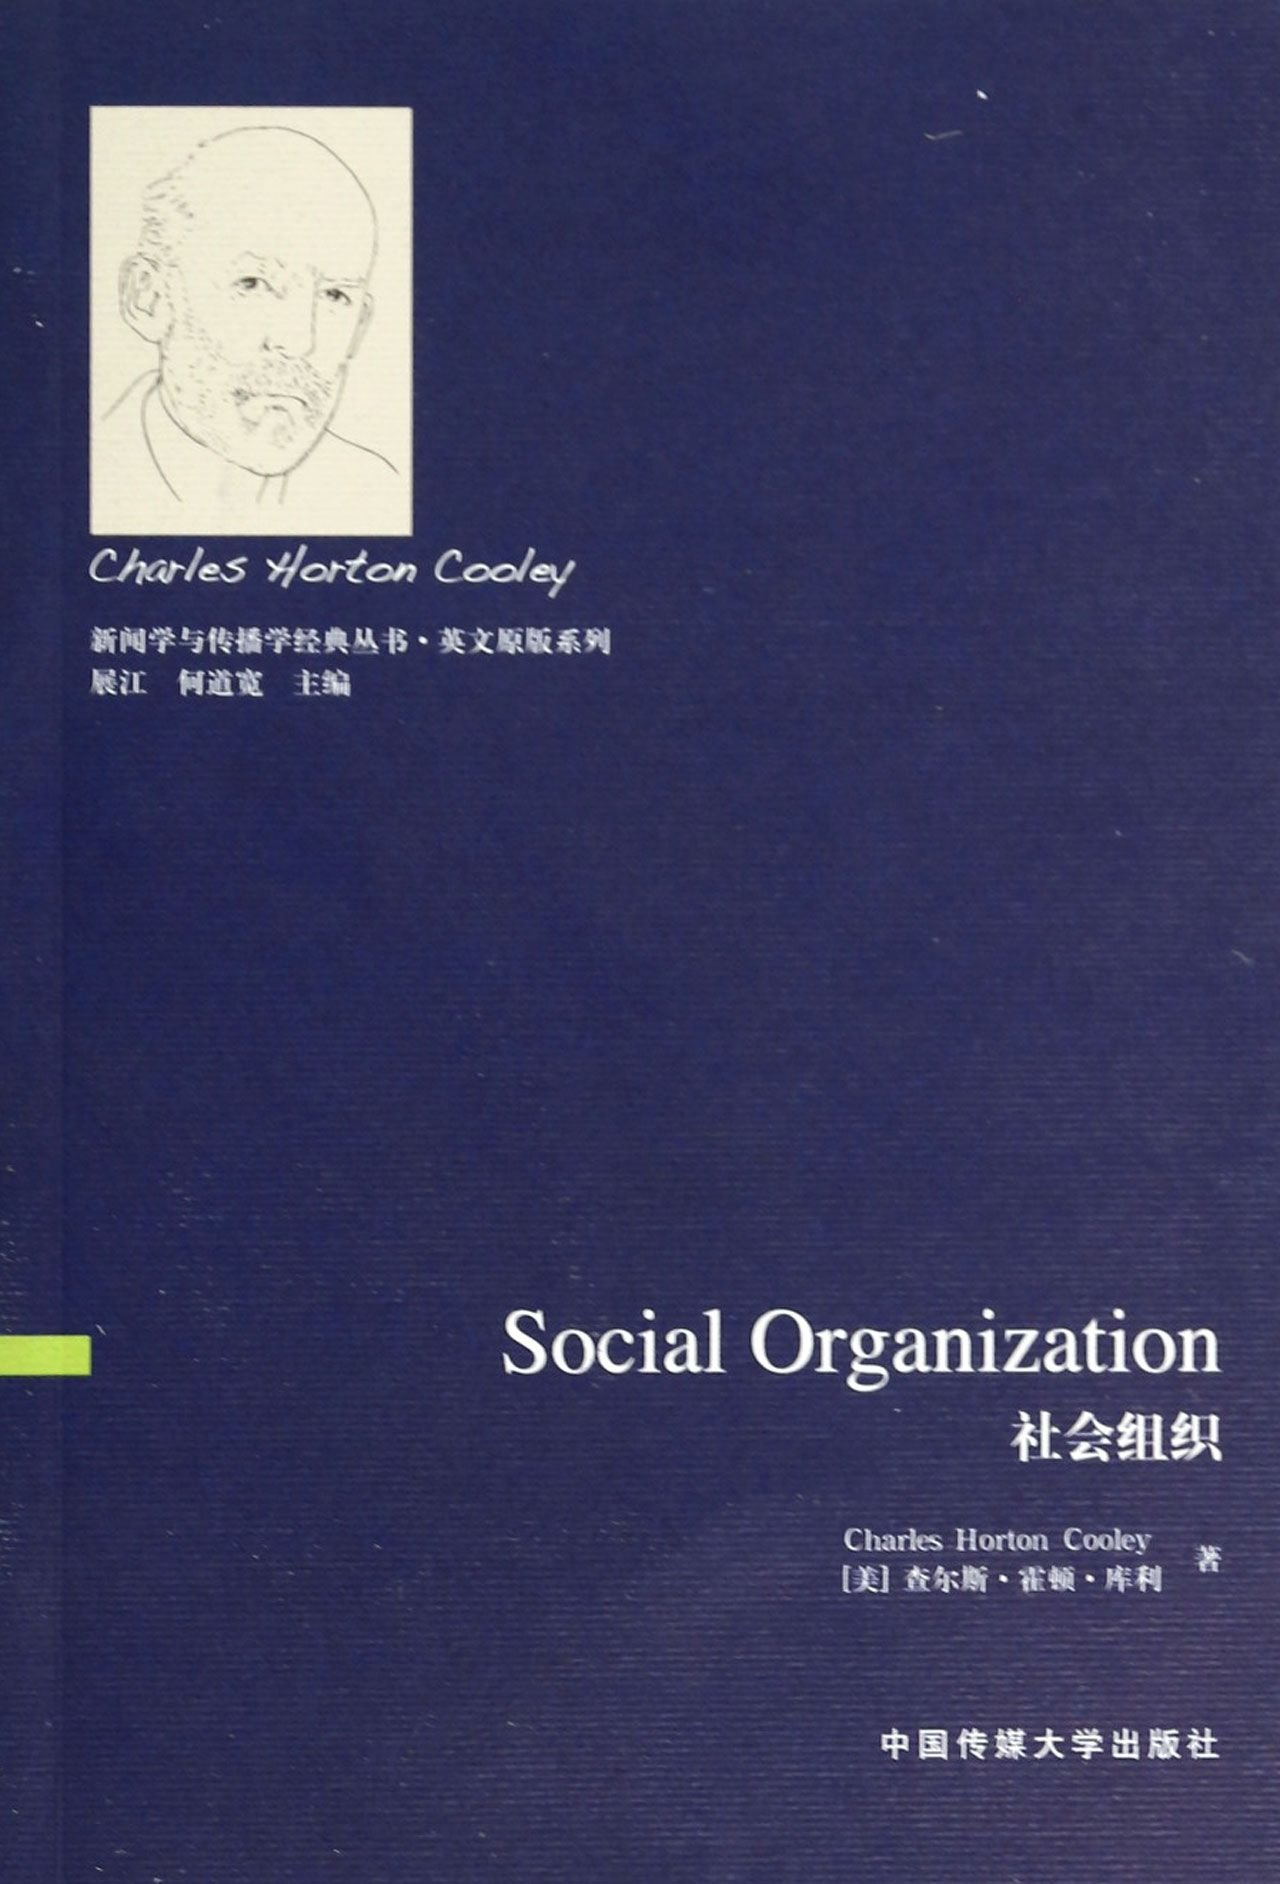 Social Organization(Chinese Edition) ebook